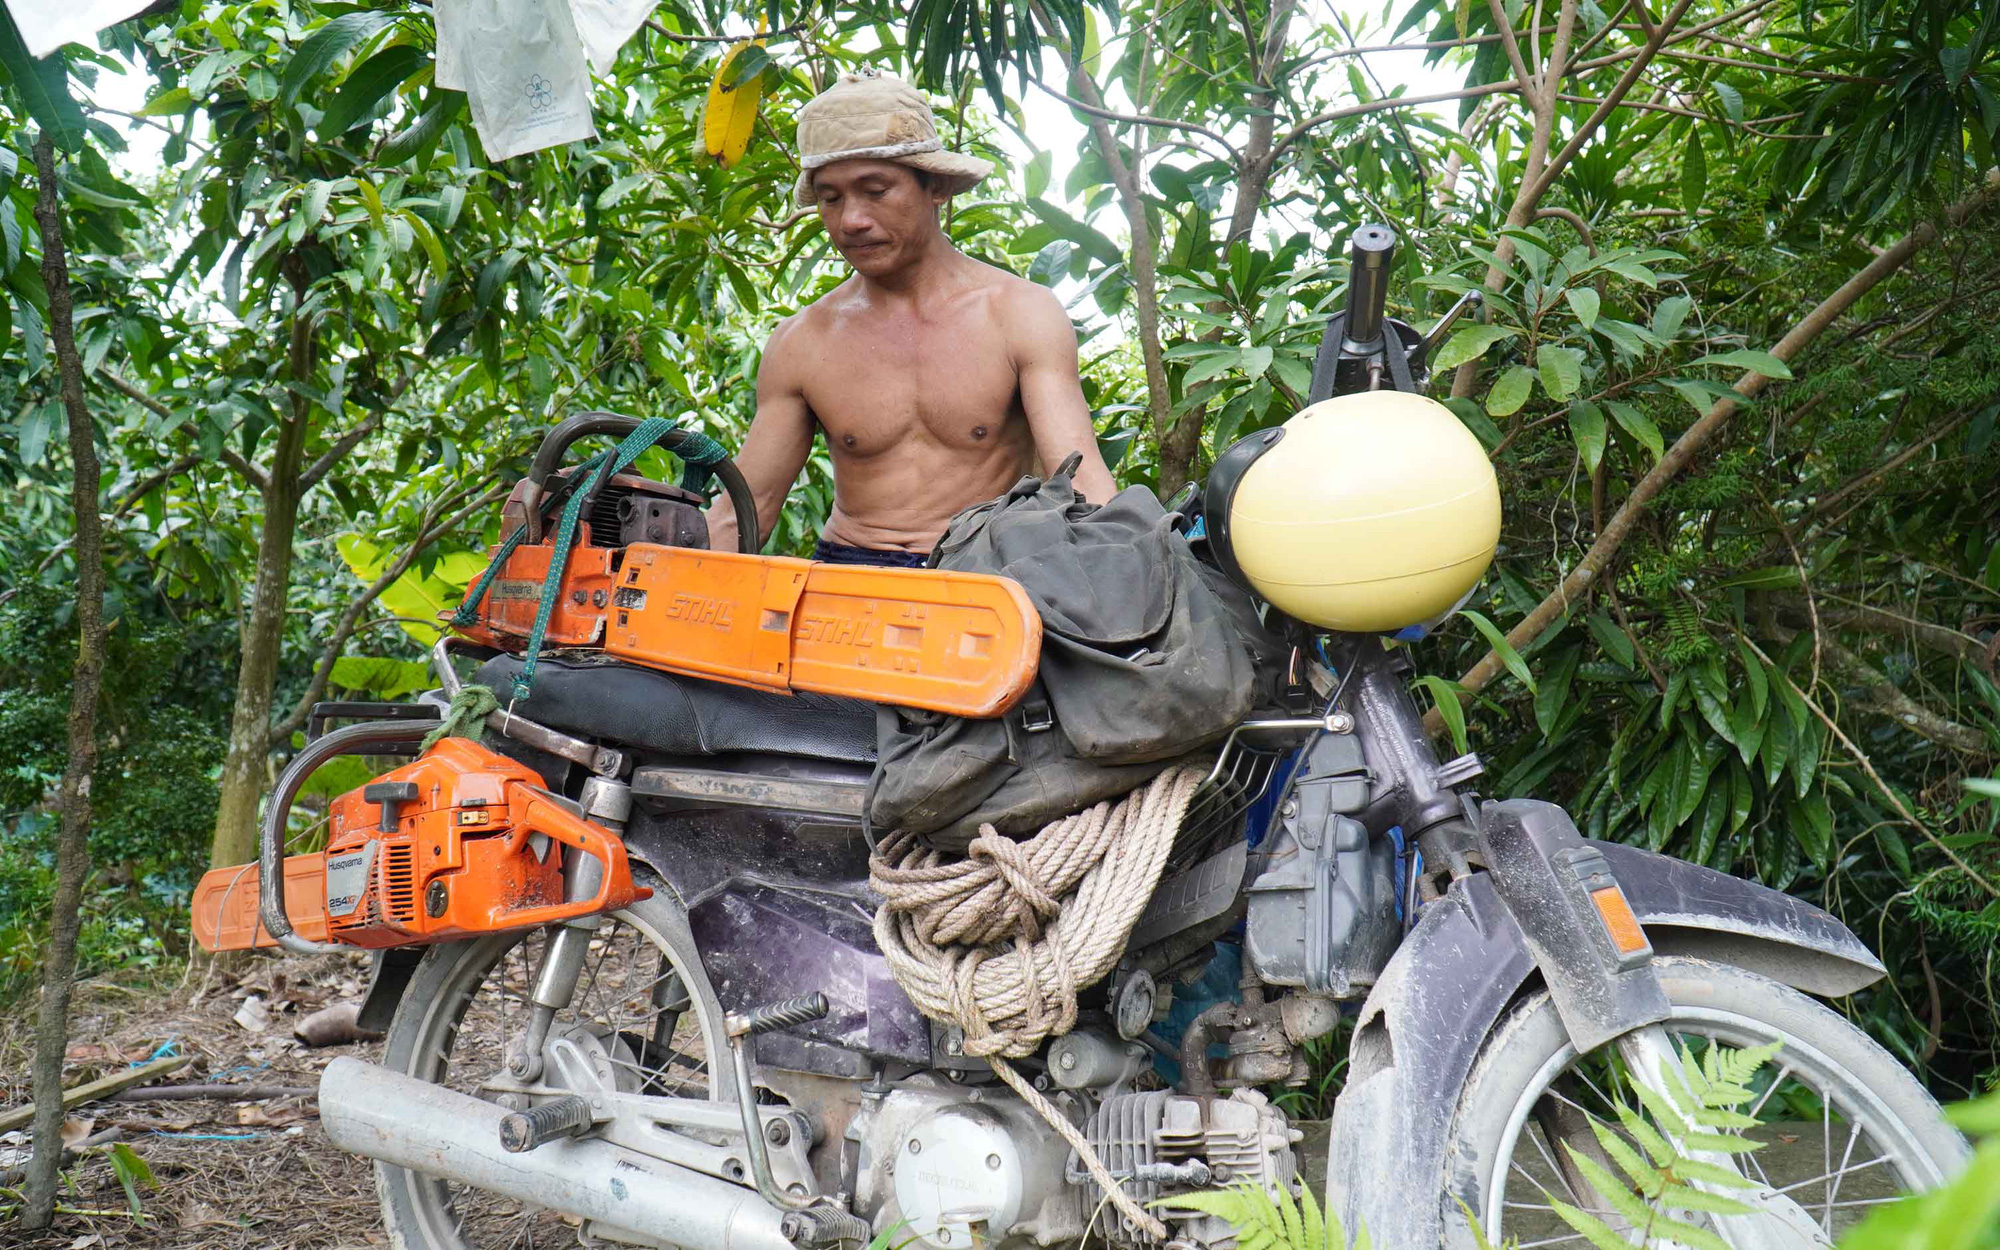 Pham Thanh Tung often travels on his motorbike packed with ropes and chainsaws in Tien Giang Province, Vietnam. Photo: Mau Truong / Tuoi Tre